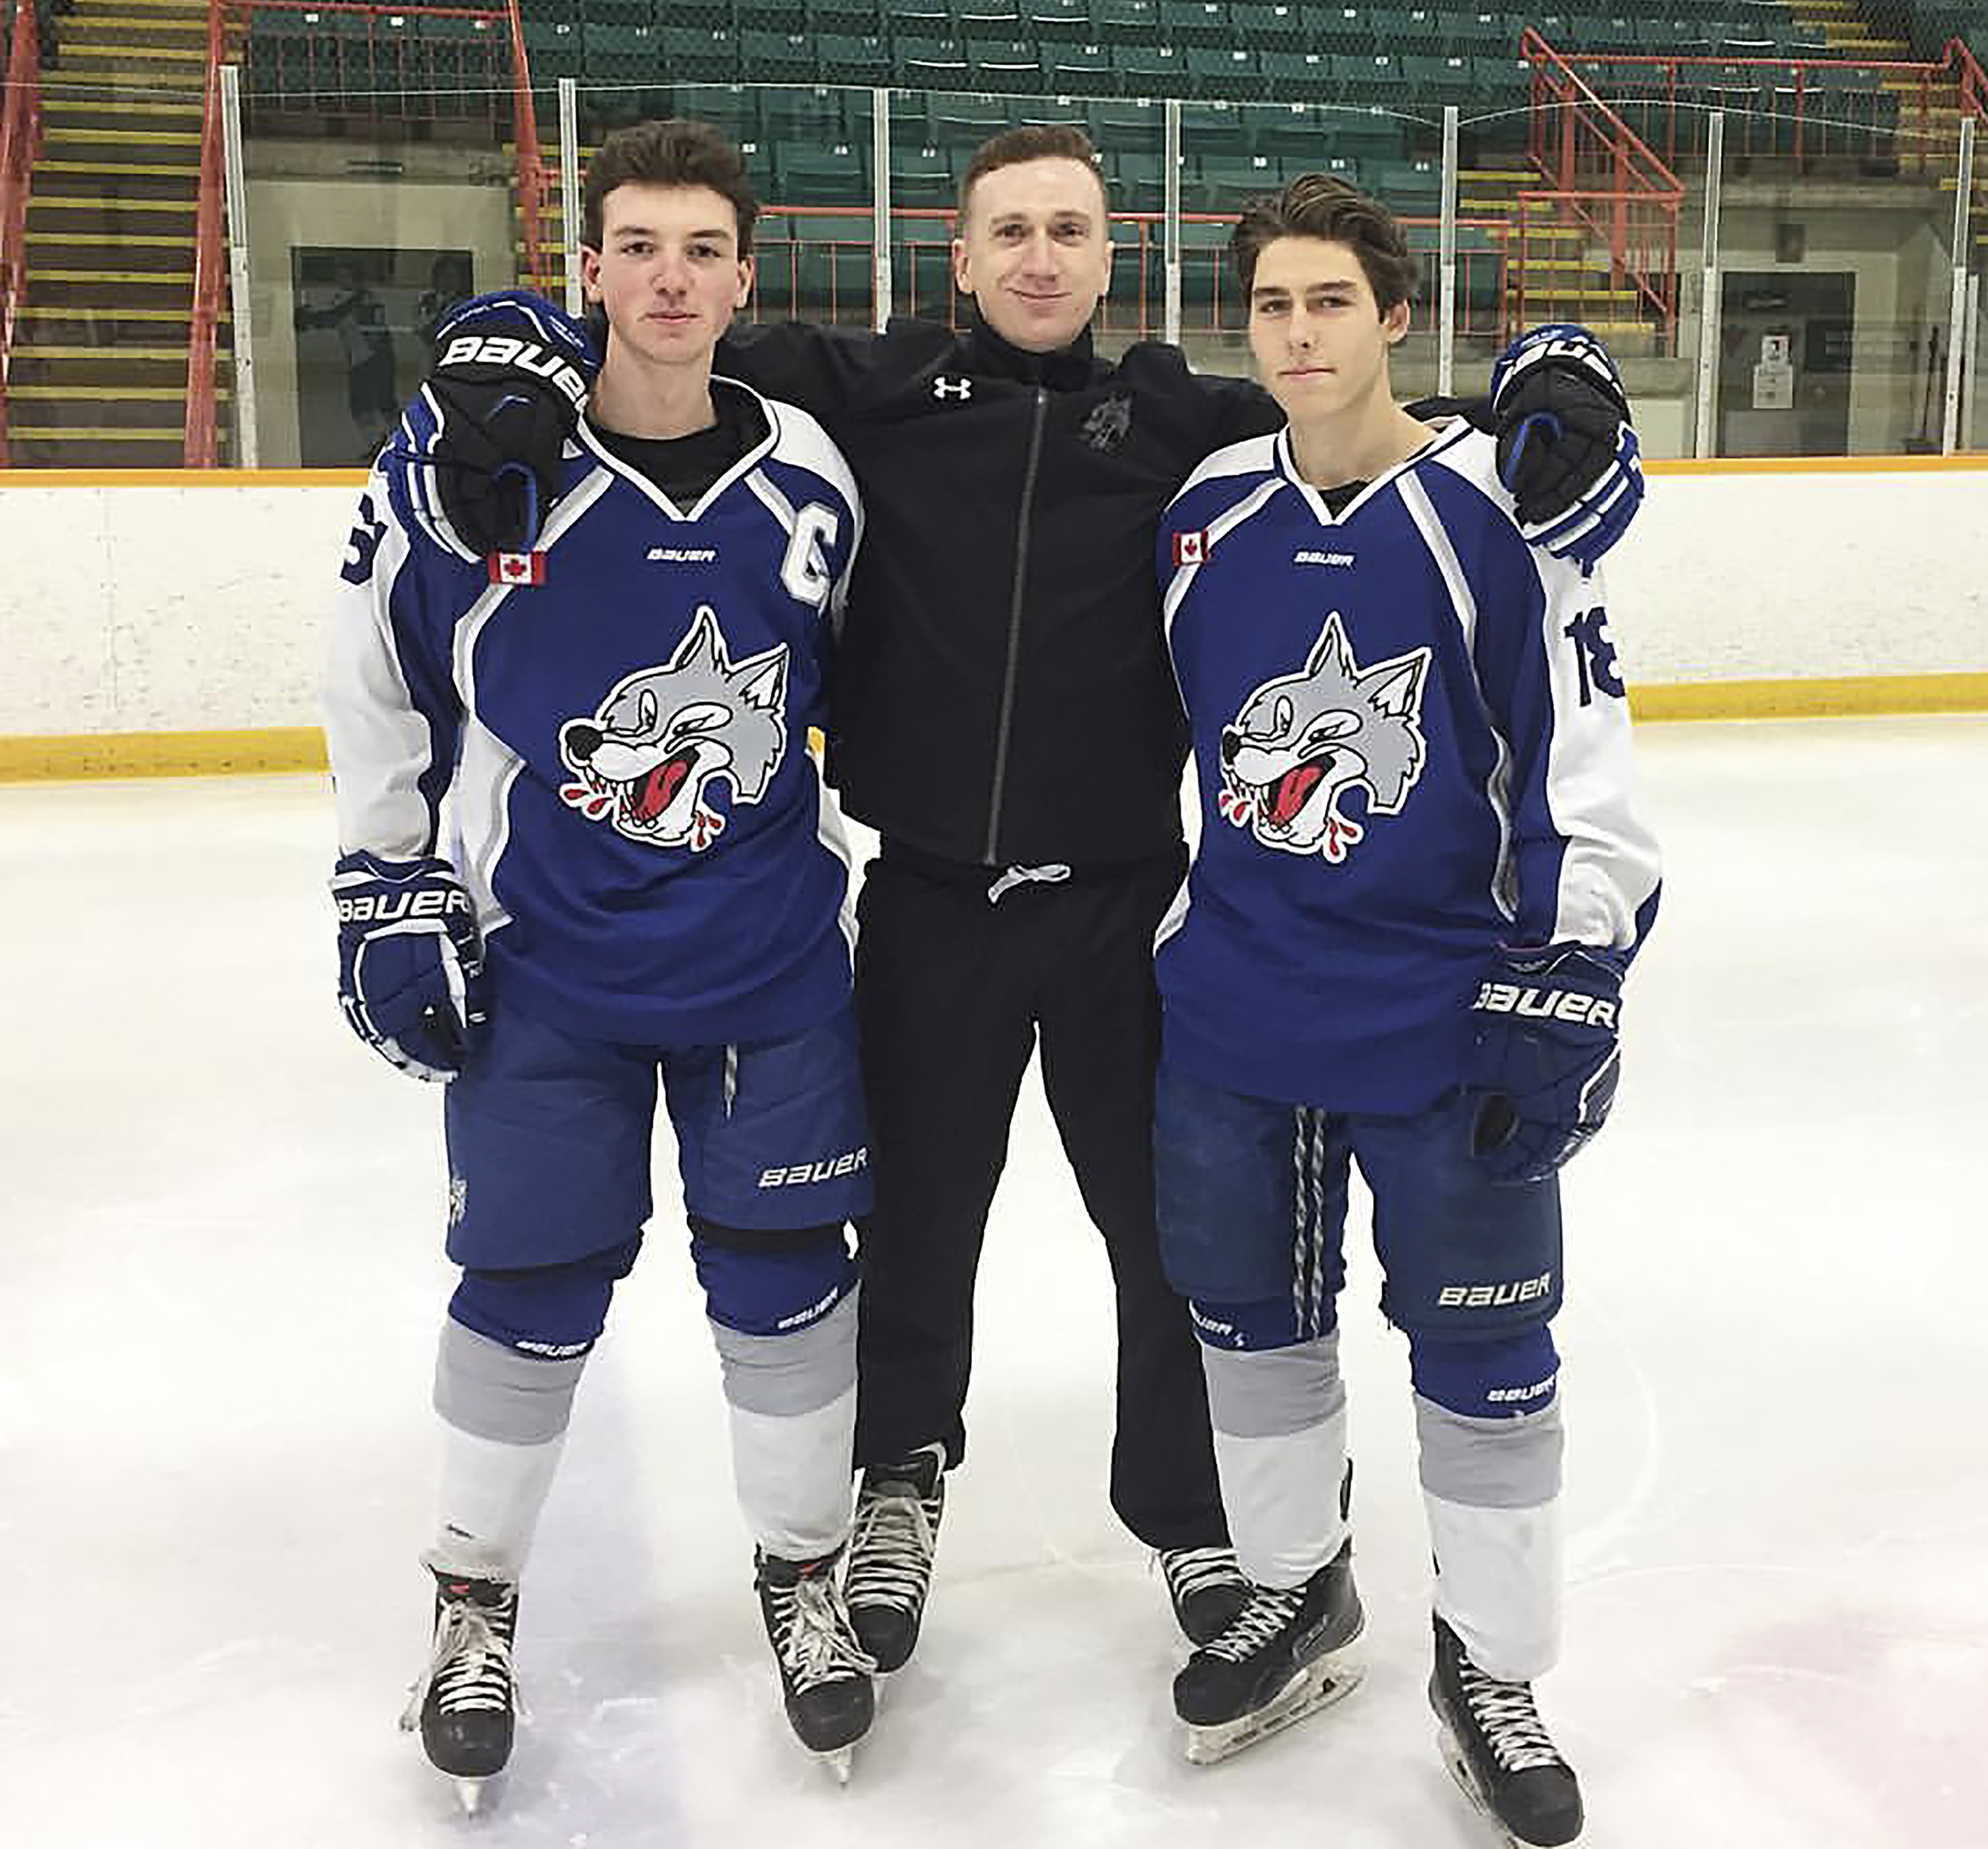 Photograph from McGillis' Instagram Brock McGillis (middle) works with players like Jake Burton (left) and Alex Rodrigue of the Sudbury Wolves, McGillis' former OHL team.